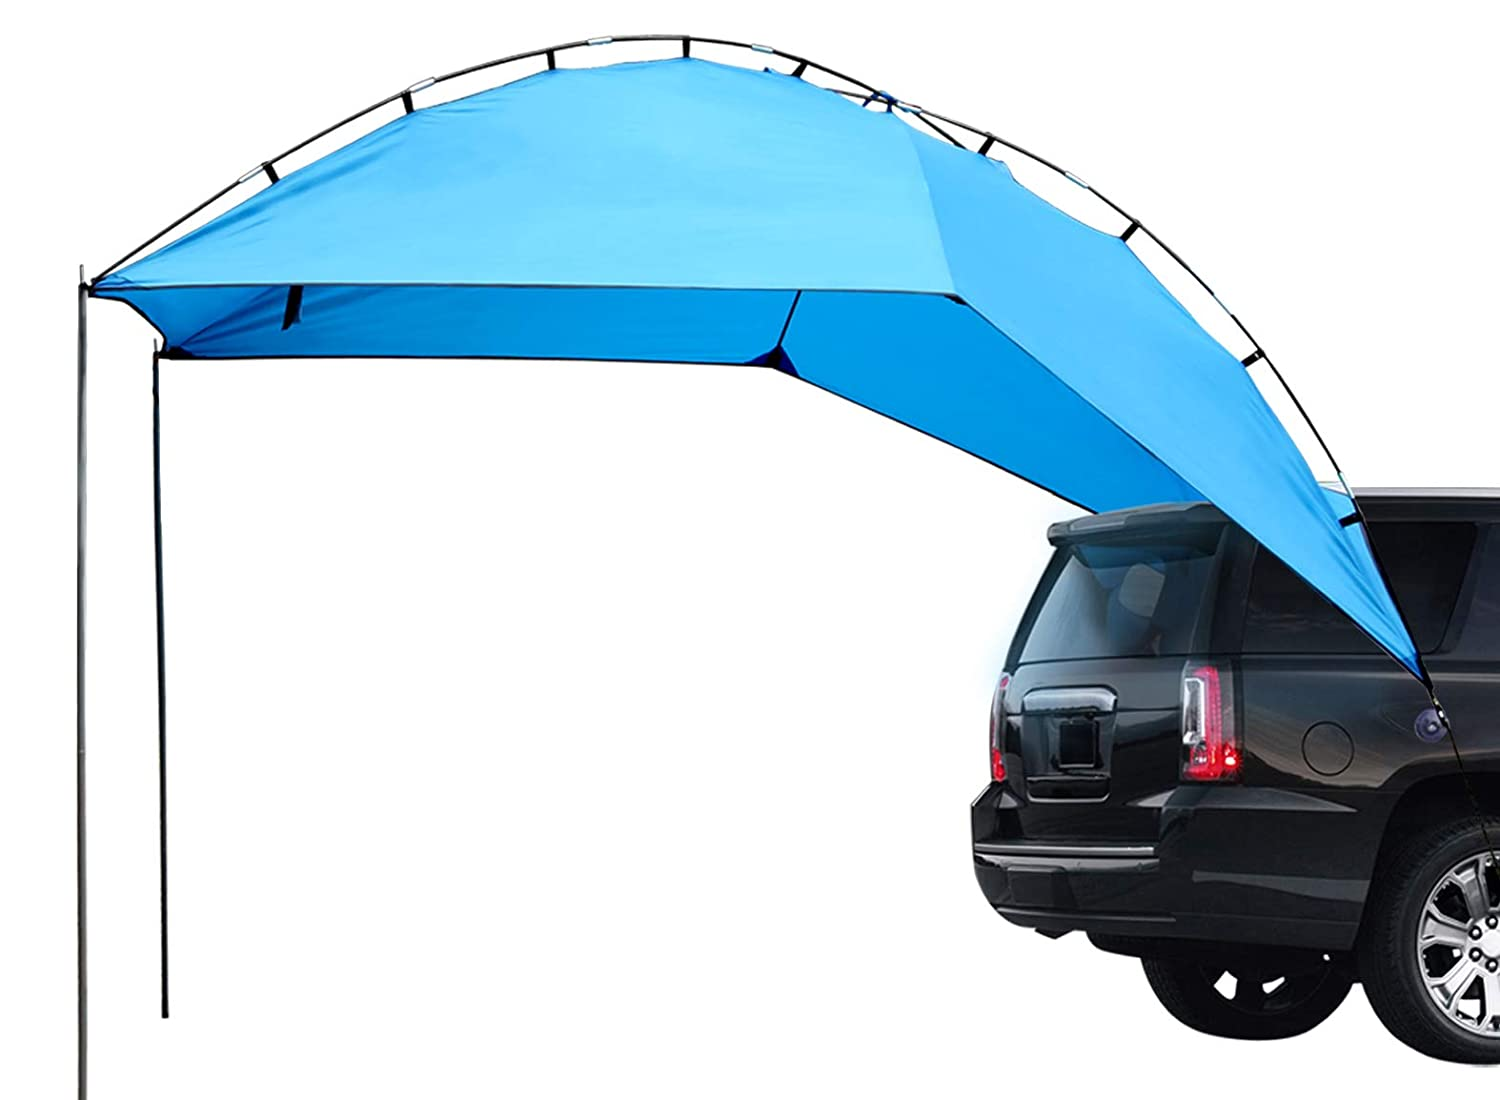 wholesale dealer 8fdc1 9617a Leader Accessories Easy Set Up Camping SUV Tent/Awning/Canopy/Sun Shelter  Tailgate Tent Beach Tent Waterproof Suitable for SUV Mini Van Campers RVs